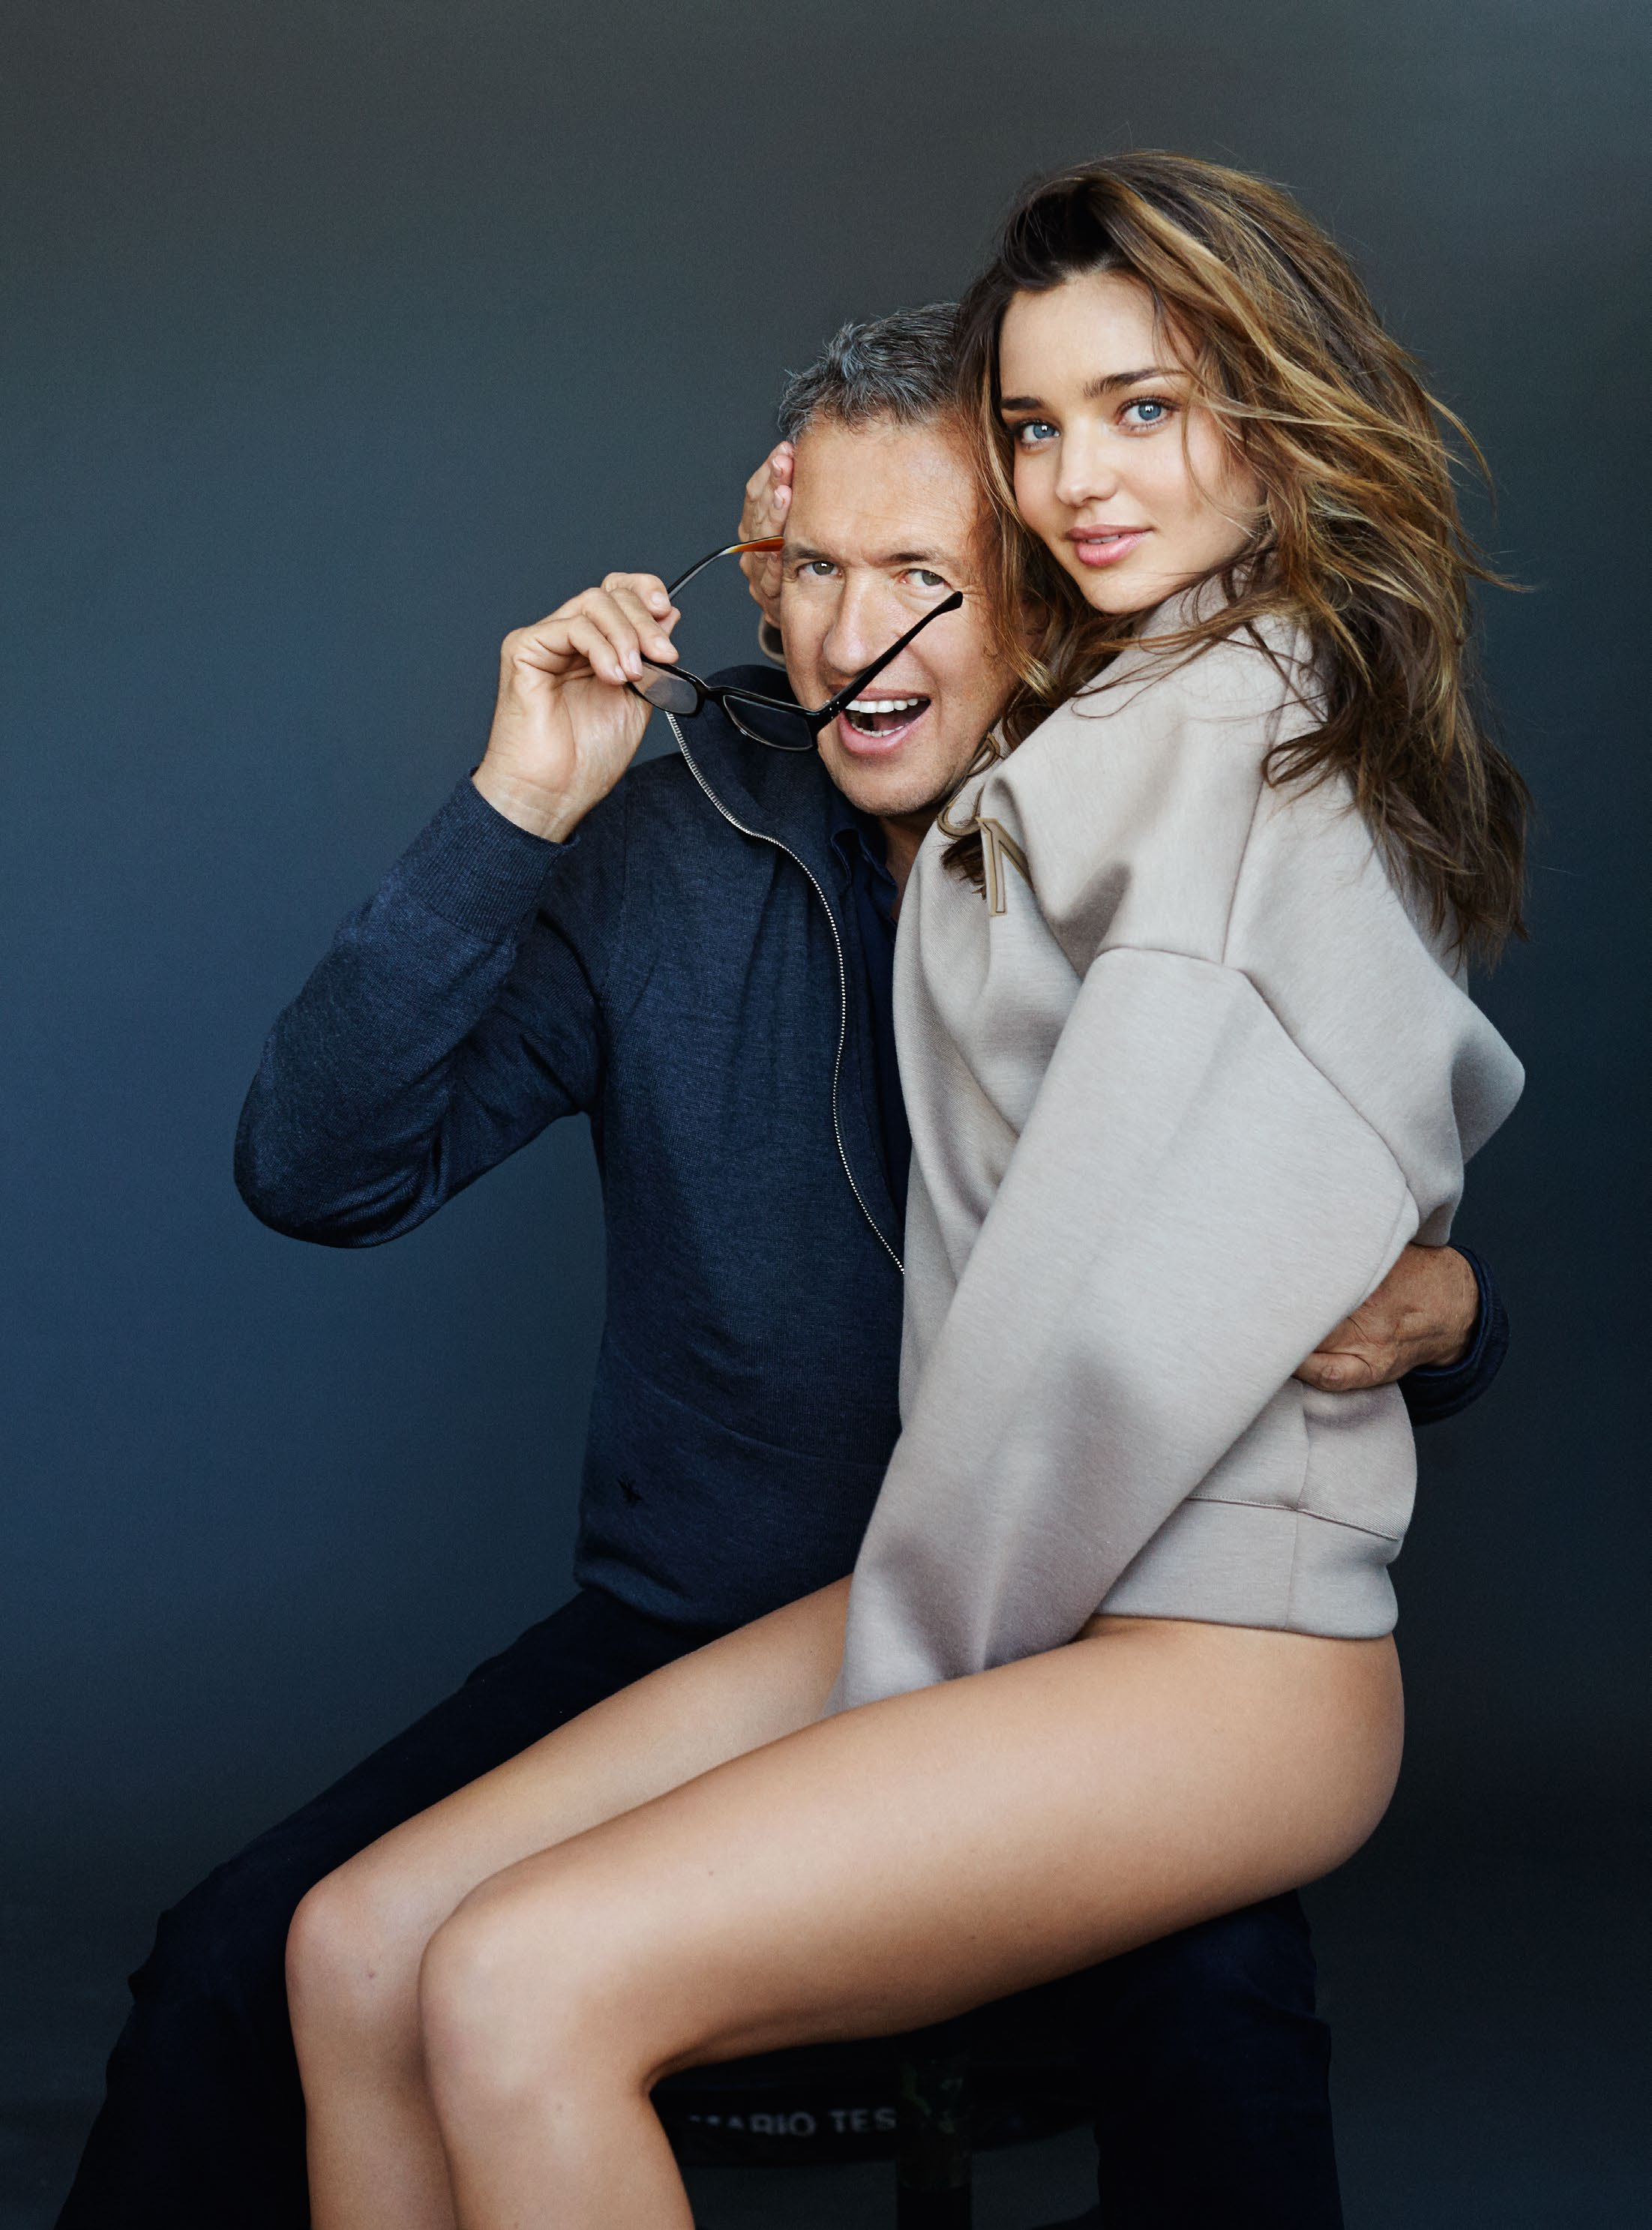 miranda-kerr-by-mario-testino-for-gq-uk-may-2014